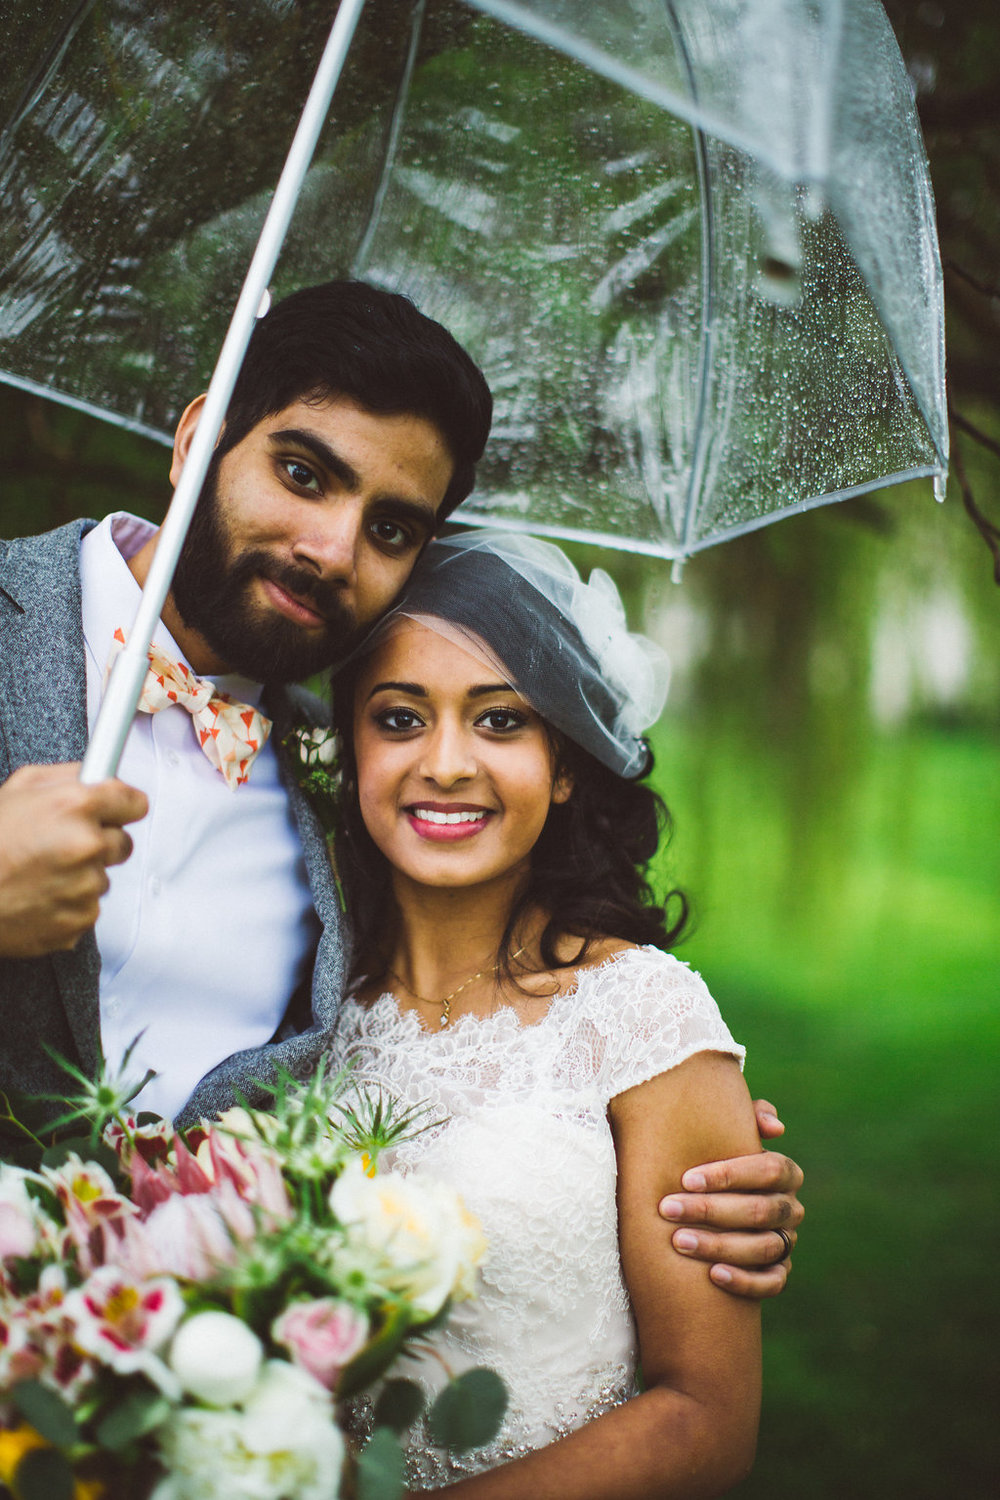 bride-and-groom-rainy-day.jpg